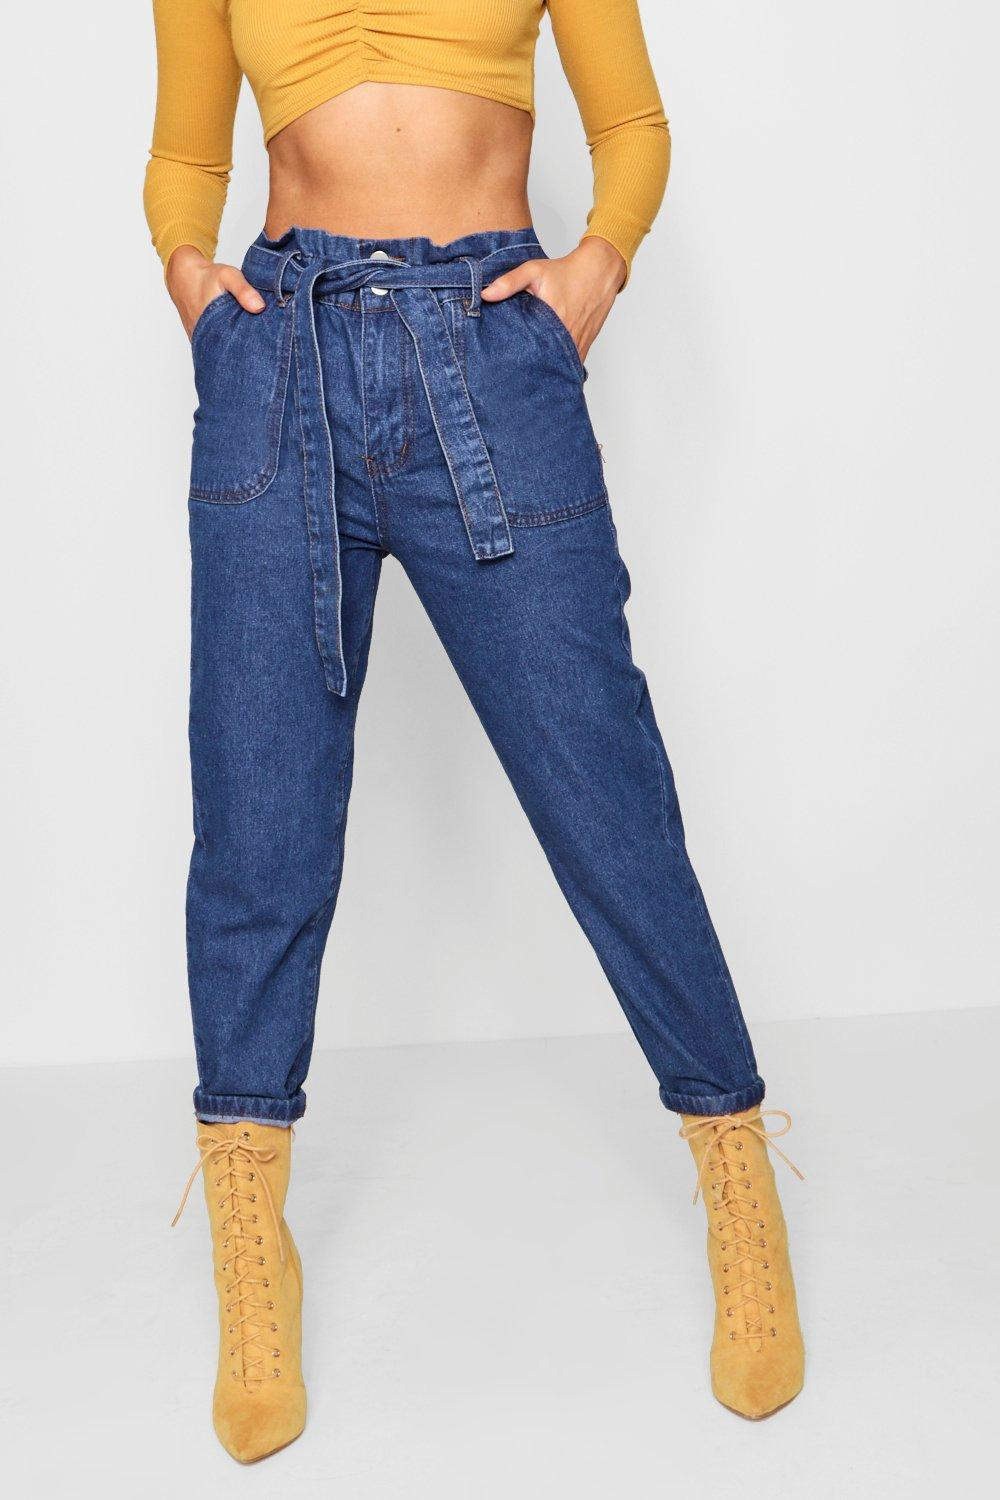 new style of 2019 popular brand website for discount Paperbag Waist Mom Jeans | Boohoo